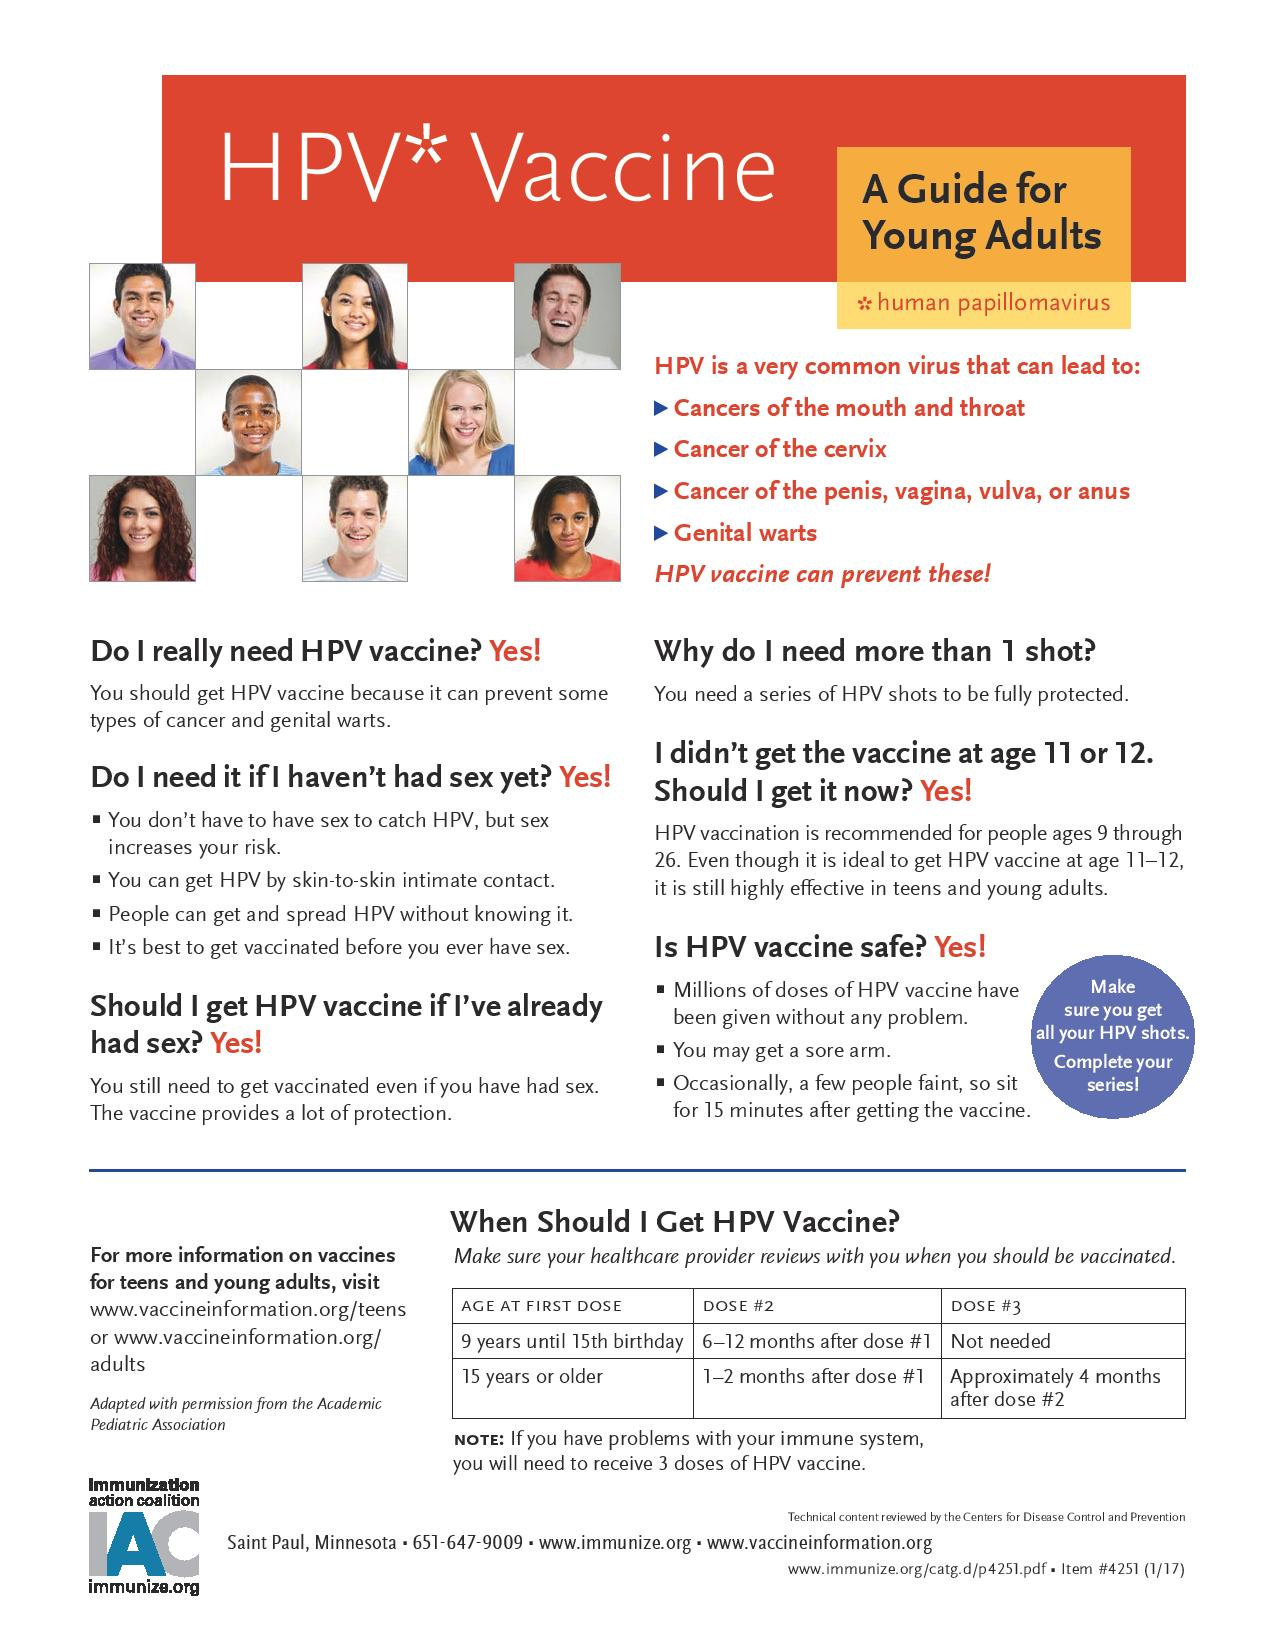 HPV Vaccine guide for young adults fact sheet